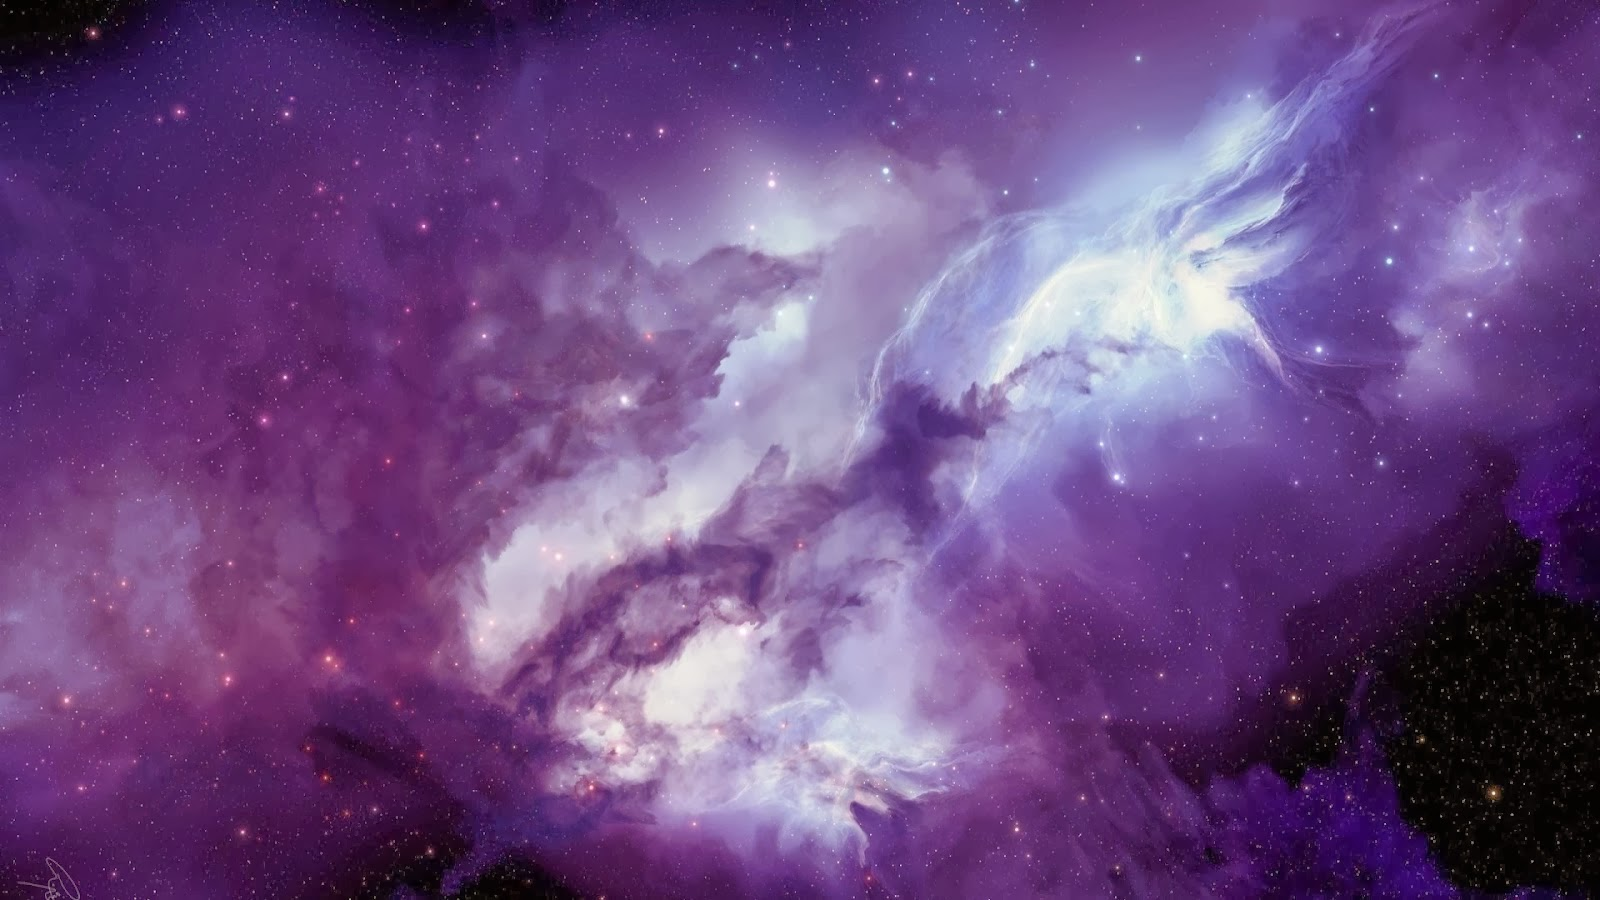 All Hot Informations: Download Space Milky Way Galaxy HD Wallpapers 1080p